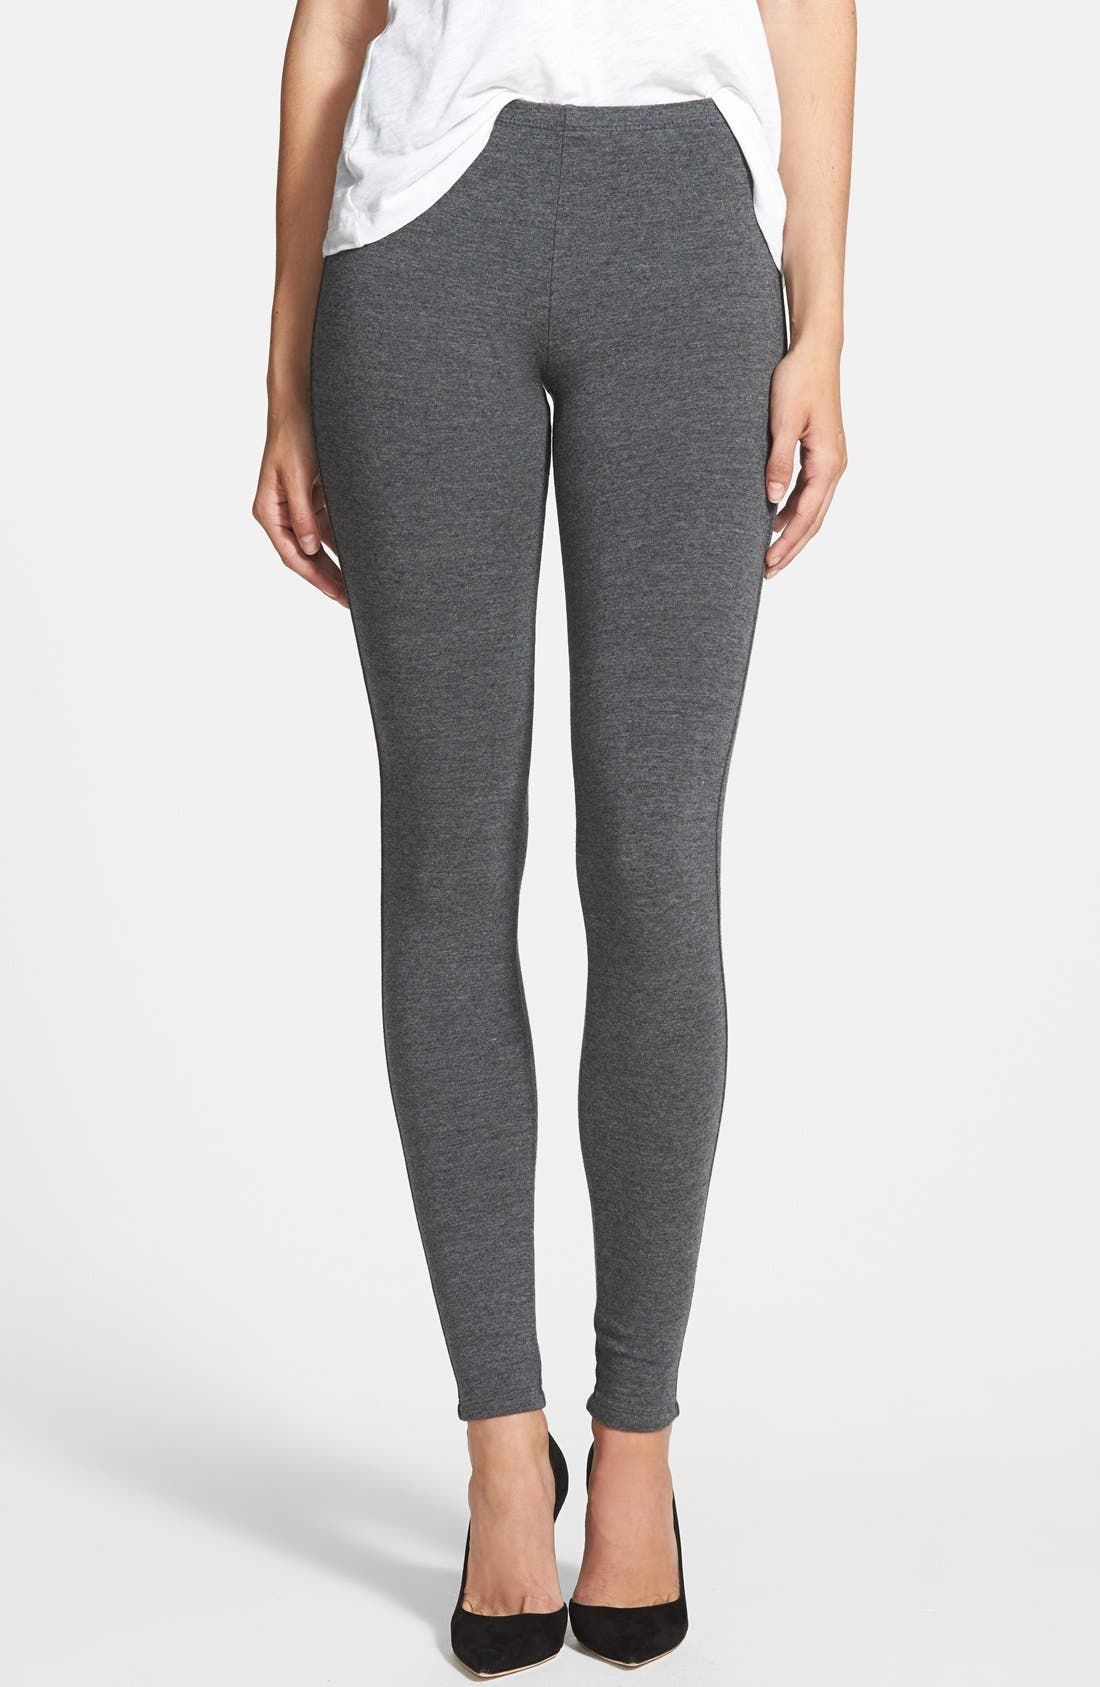 French Terry Leggings,                             Main thumbnail 1, color,                             CHARCOAL